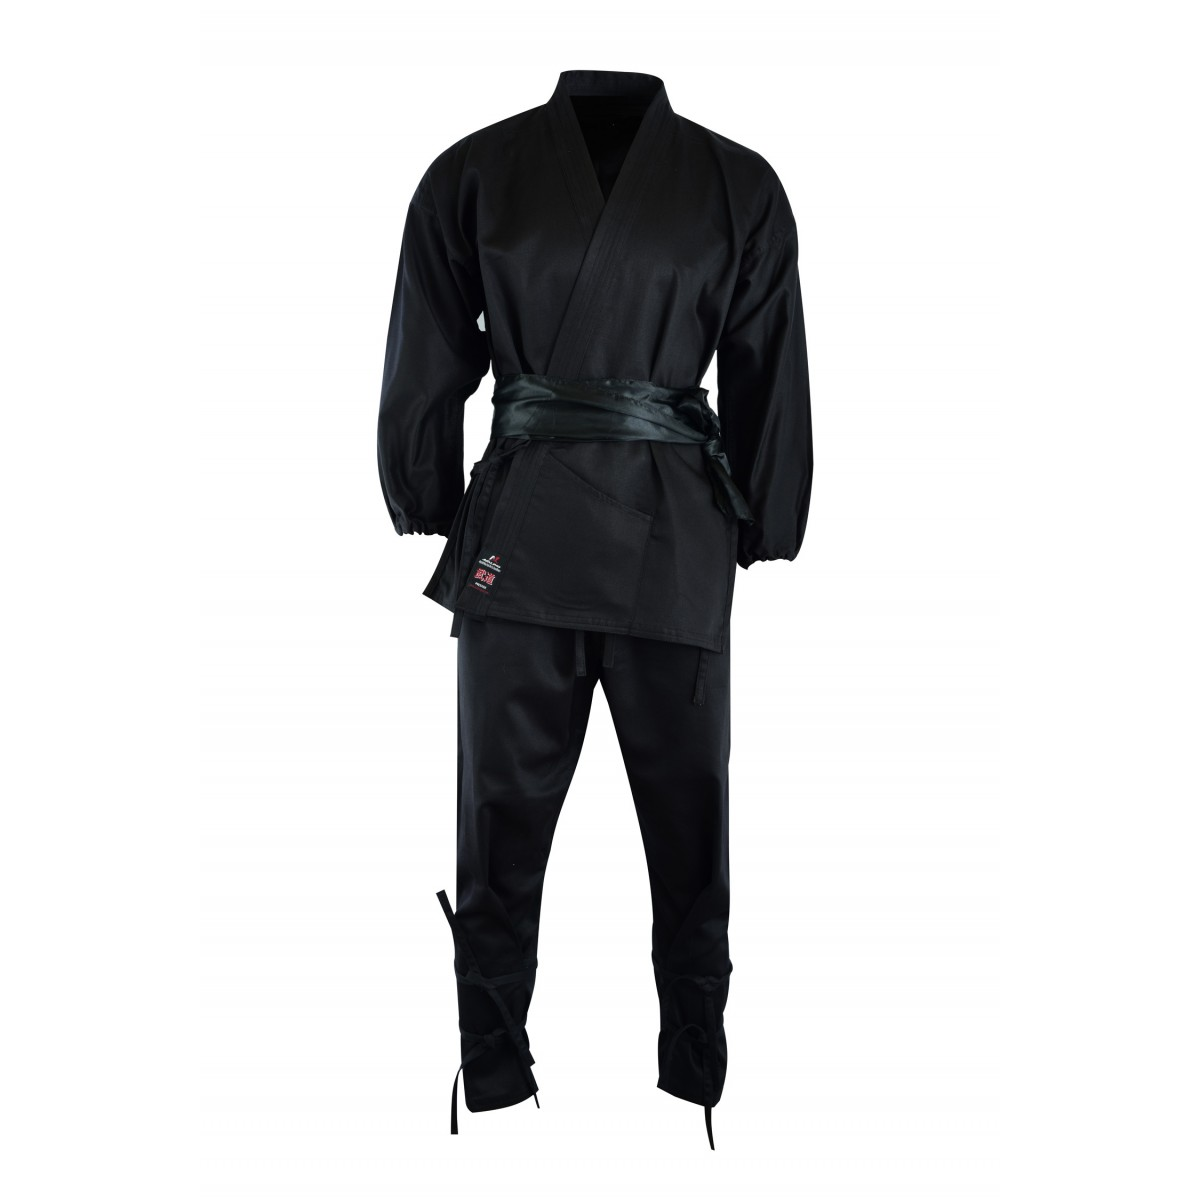 Malino Adult Ninja Suit Cotton Black 8oz